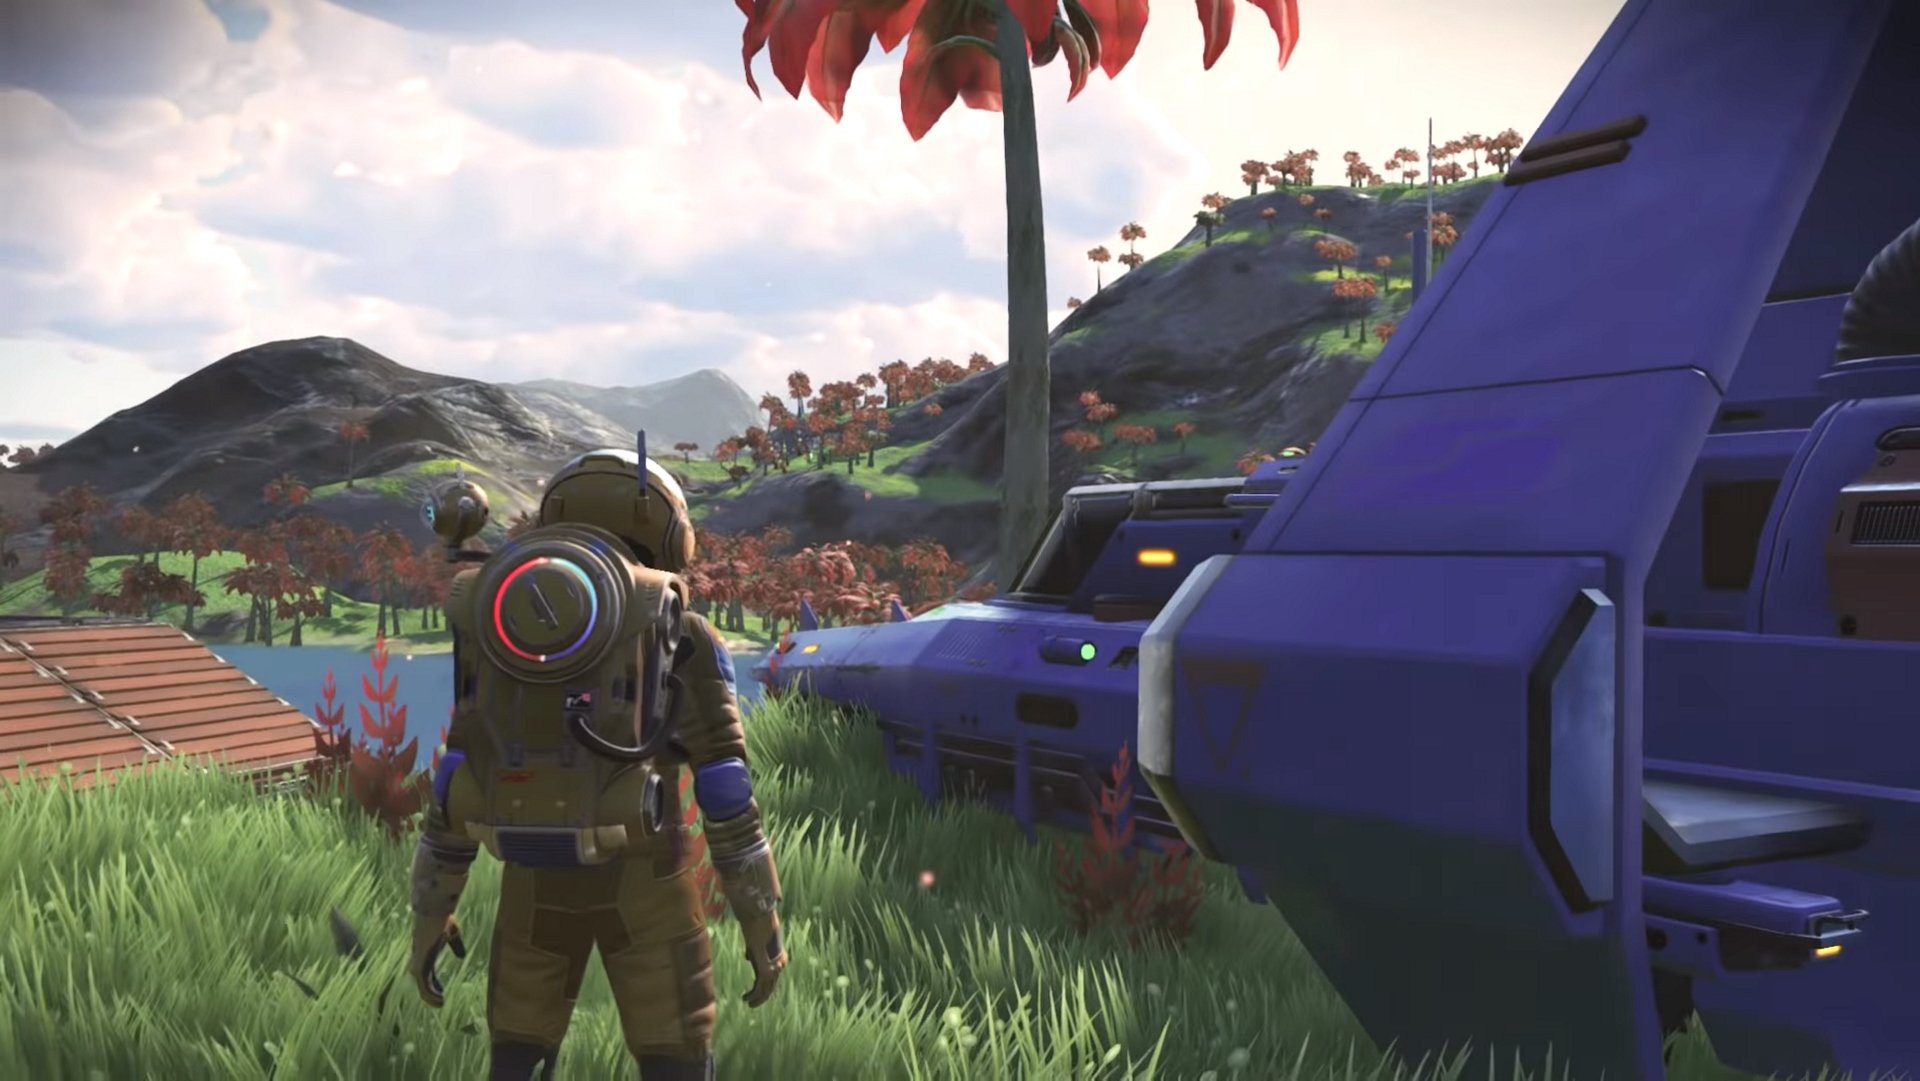 No Camera Shake - Curing motion sickness in NMS